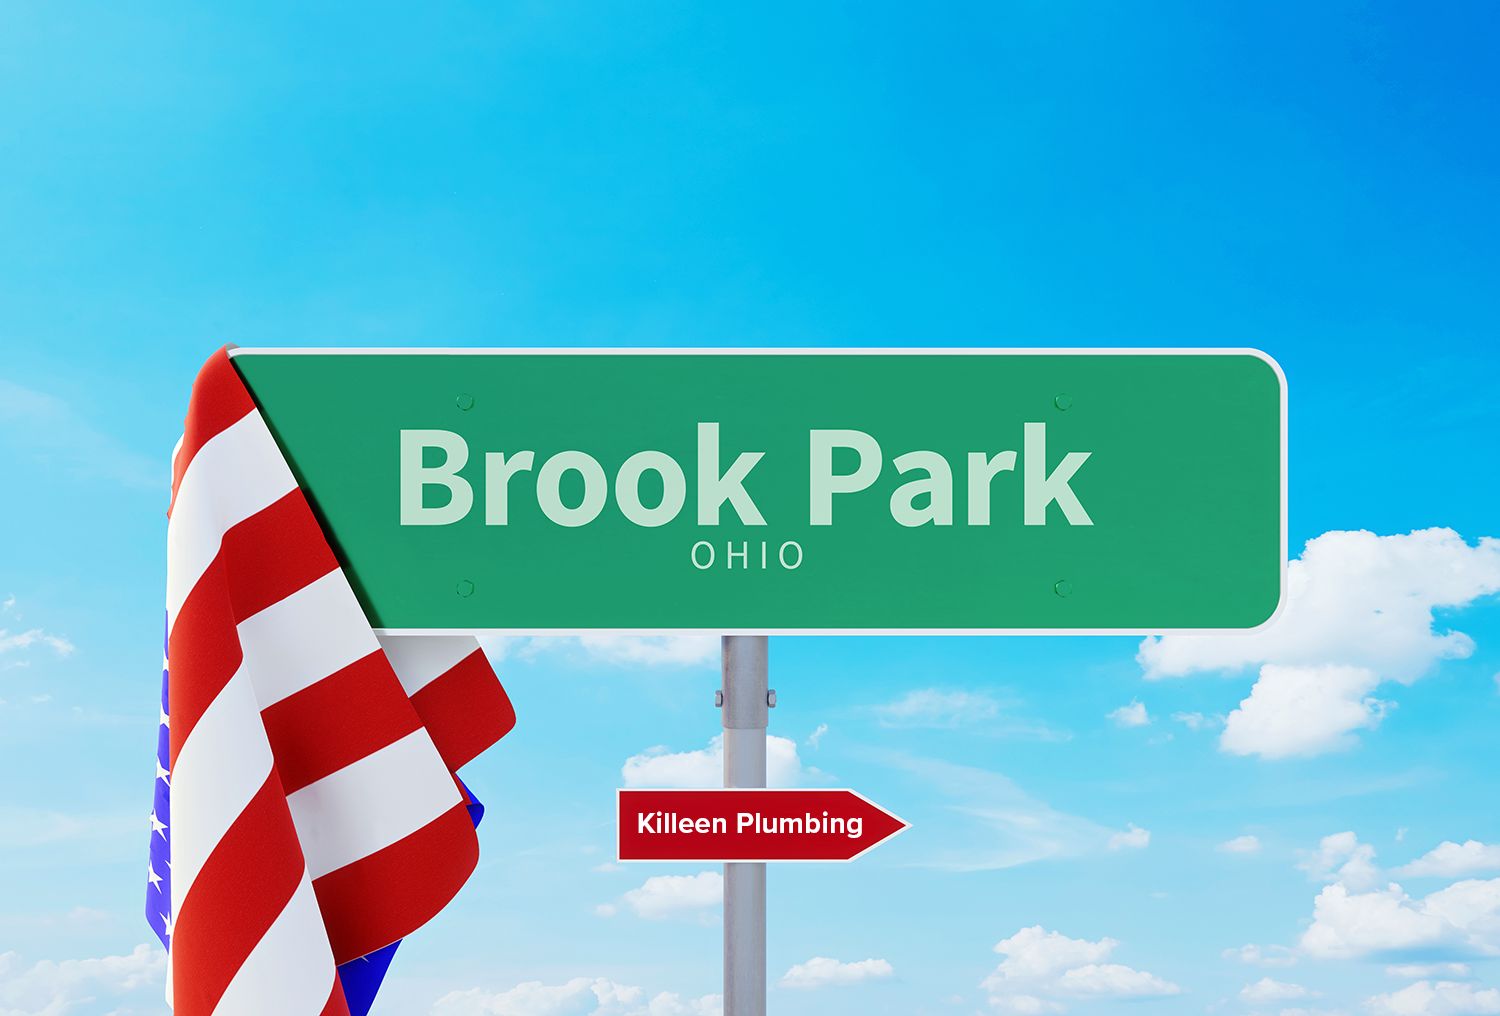 A sign for Brook Park, OH, pointing toward Killeen Plumbing